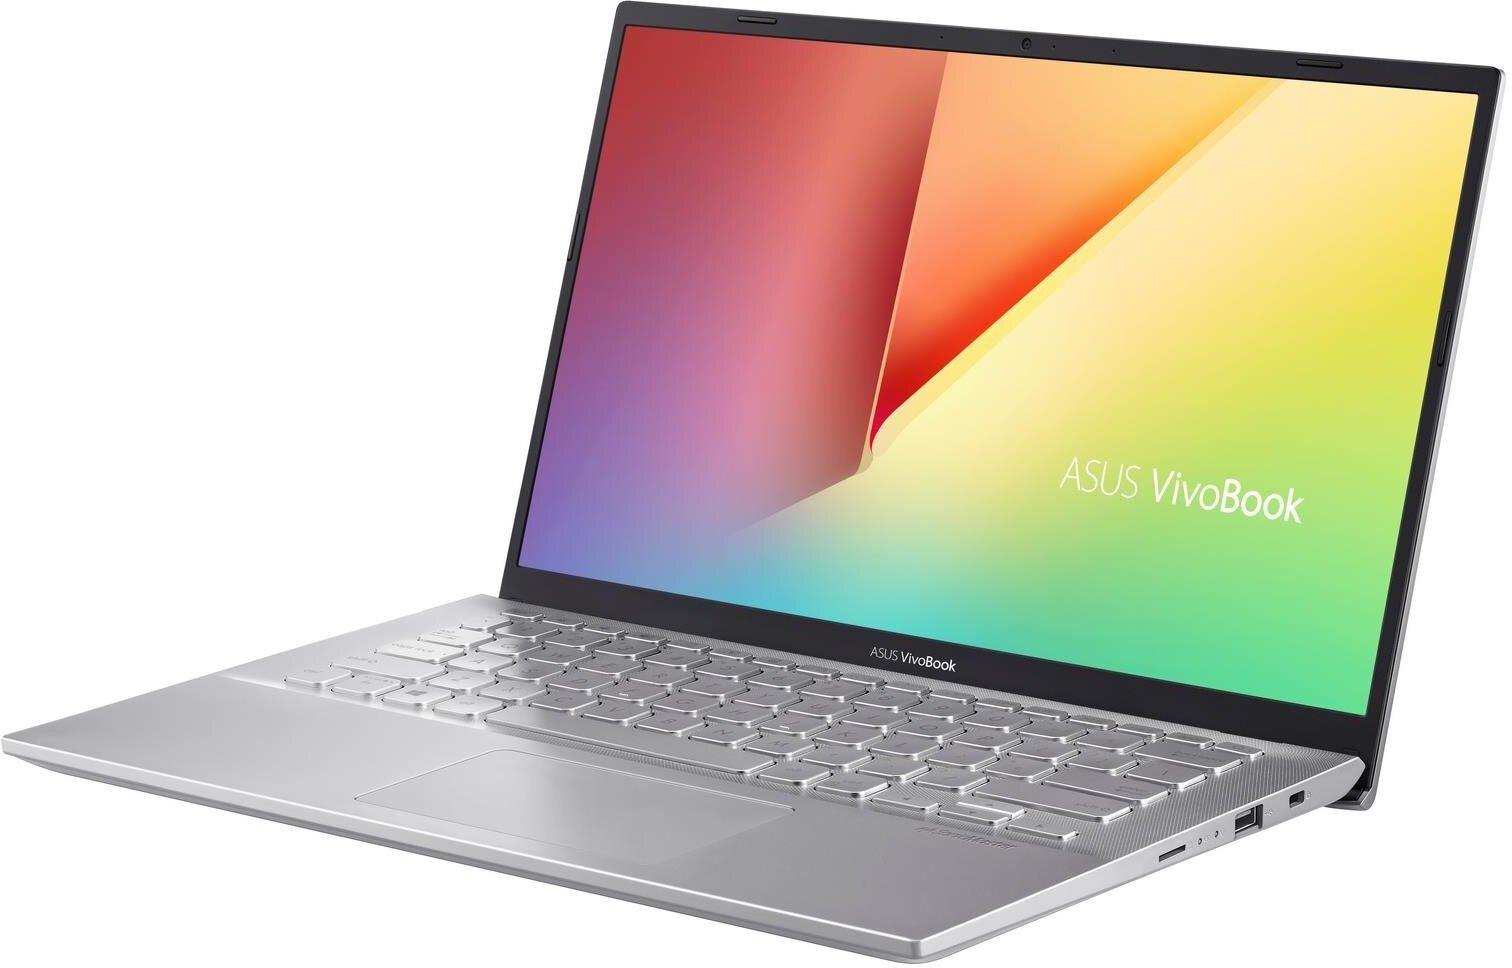 "M412DA-EK012T ASUS Vivobook M412DA - 14"" TN FHD/AMD R3-3200U/4G/128G SSD/W10HomeS (Silver)"